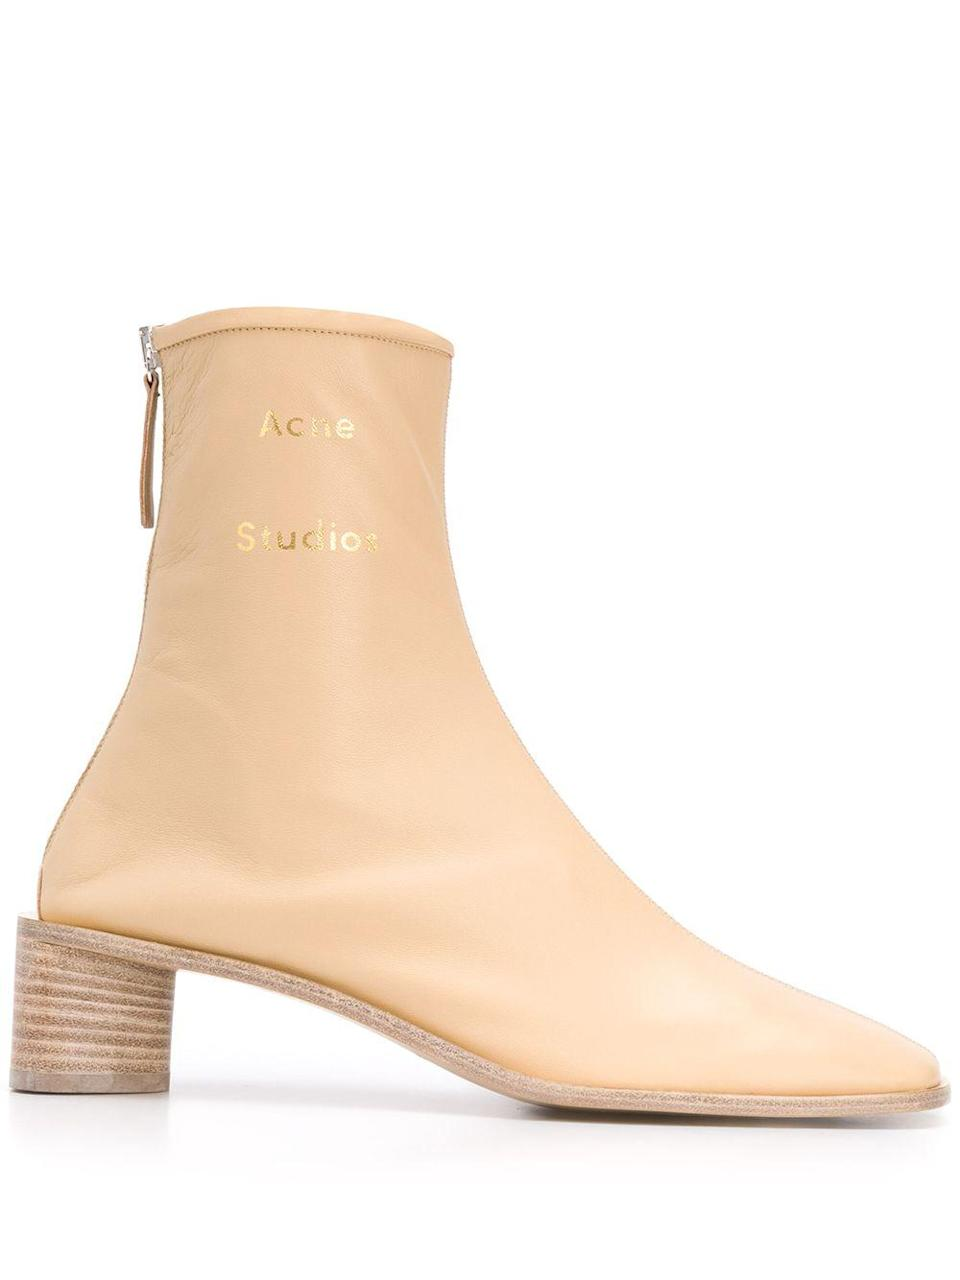 """<p><strong>Acne Studios</strong></p><p>farfetch.com</p><p><strong>$590.00</strong></p><p><a href=""""https://go.redirectingat.com?id=74968X1596630&url=https%3A%2F%2Fwww.farfetch.com%2Fshopping%2Fwomen%2Facne-studios-branded-square-toe-boots-item-15146675.aspx&sref=https%3A%2F%2Fwww.harpersbazaar.com%2Ffashion%2Ftrends%2Fg31749966%2Fsummer-2020-shoe-trends%2F"""" rel=""""nofollow noopener"""" target=""""_blank"""" data-ylk=""""slk:Shop Now"""" class=""""link rapid-noclick-resp"""">Shop Now</a></p><p>Somewhere between a white and a tan, this subtle neutral goes with everything.</p>"""